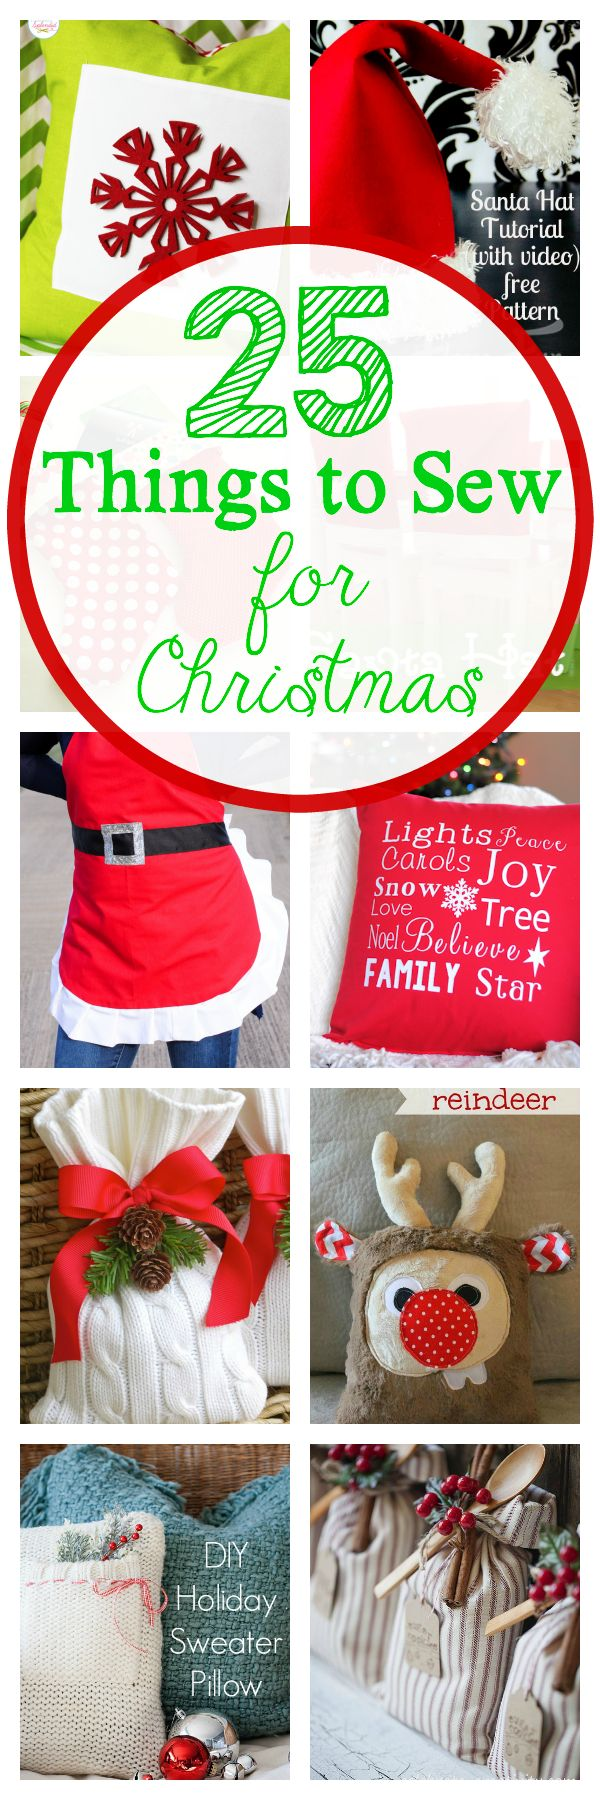 25 great things to sew for Christmas from stockings to tree skirts, aprons, gifts and more via @crazylittleproj